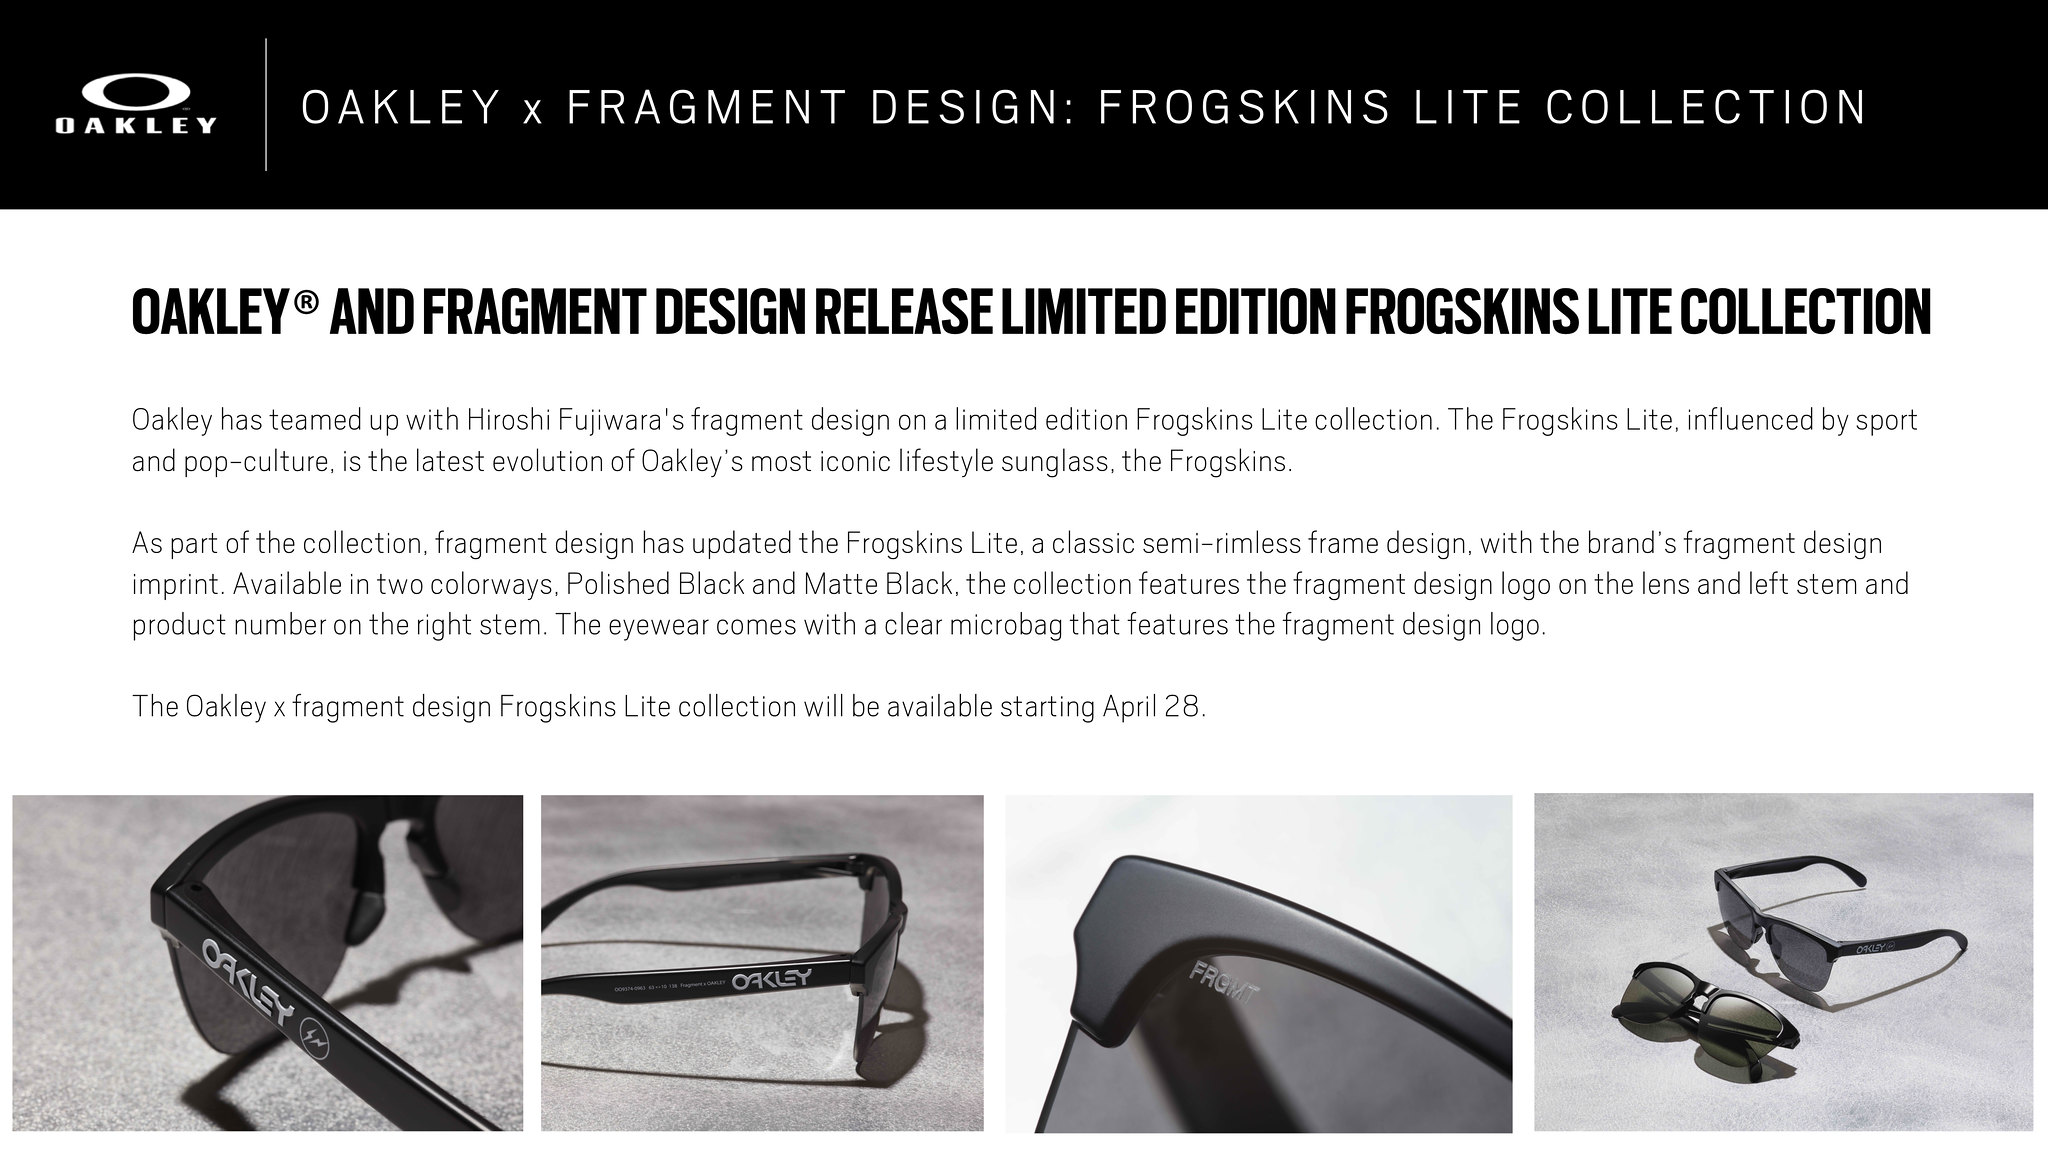 5393157c28b The Oakley x fragment design Frogskins Lite collection will be available  starting April 28.